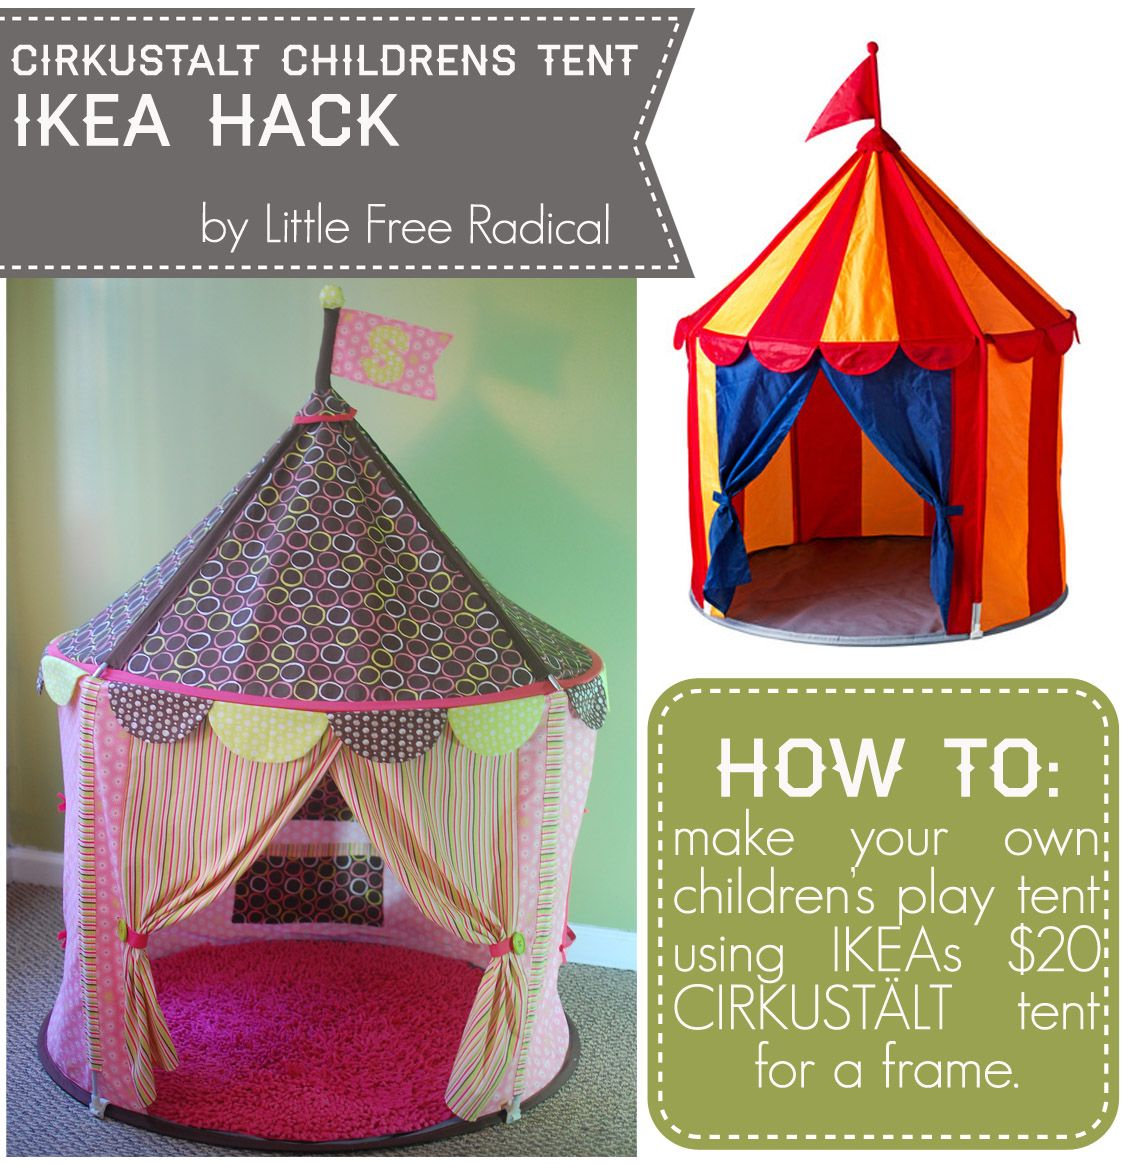 Little Free Radical Childrenu0027s Tent (Ikea Hack tutorial) I have this tent in my living room!  sc 1 st  Pinterest & Diy tent | things I like | Pinterest | Ikea hack Tents and Child